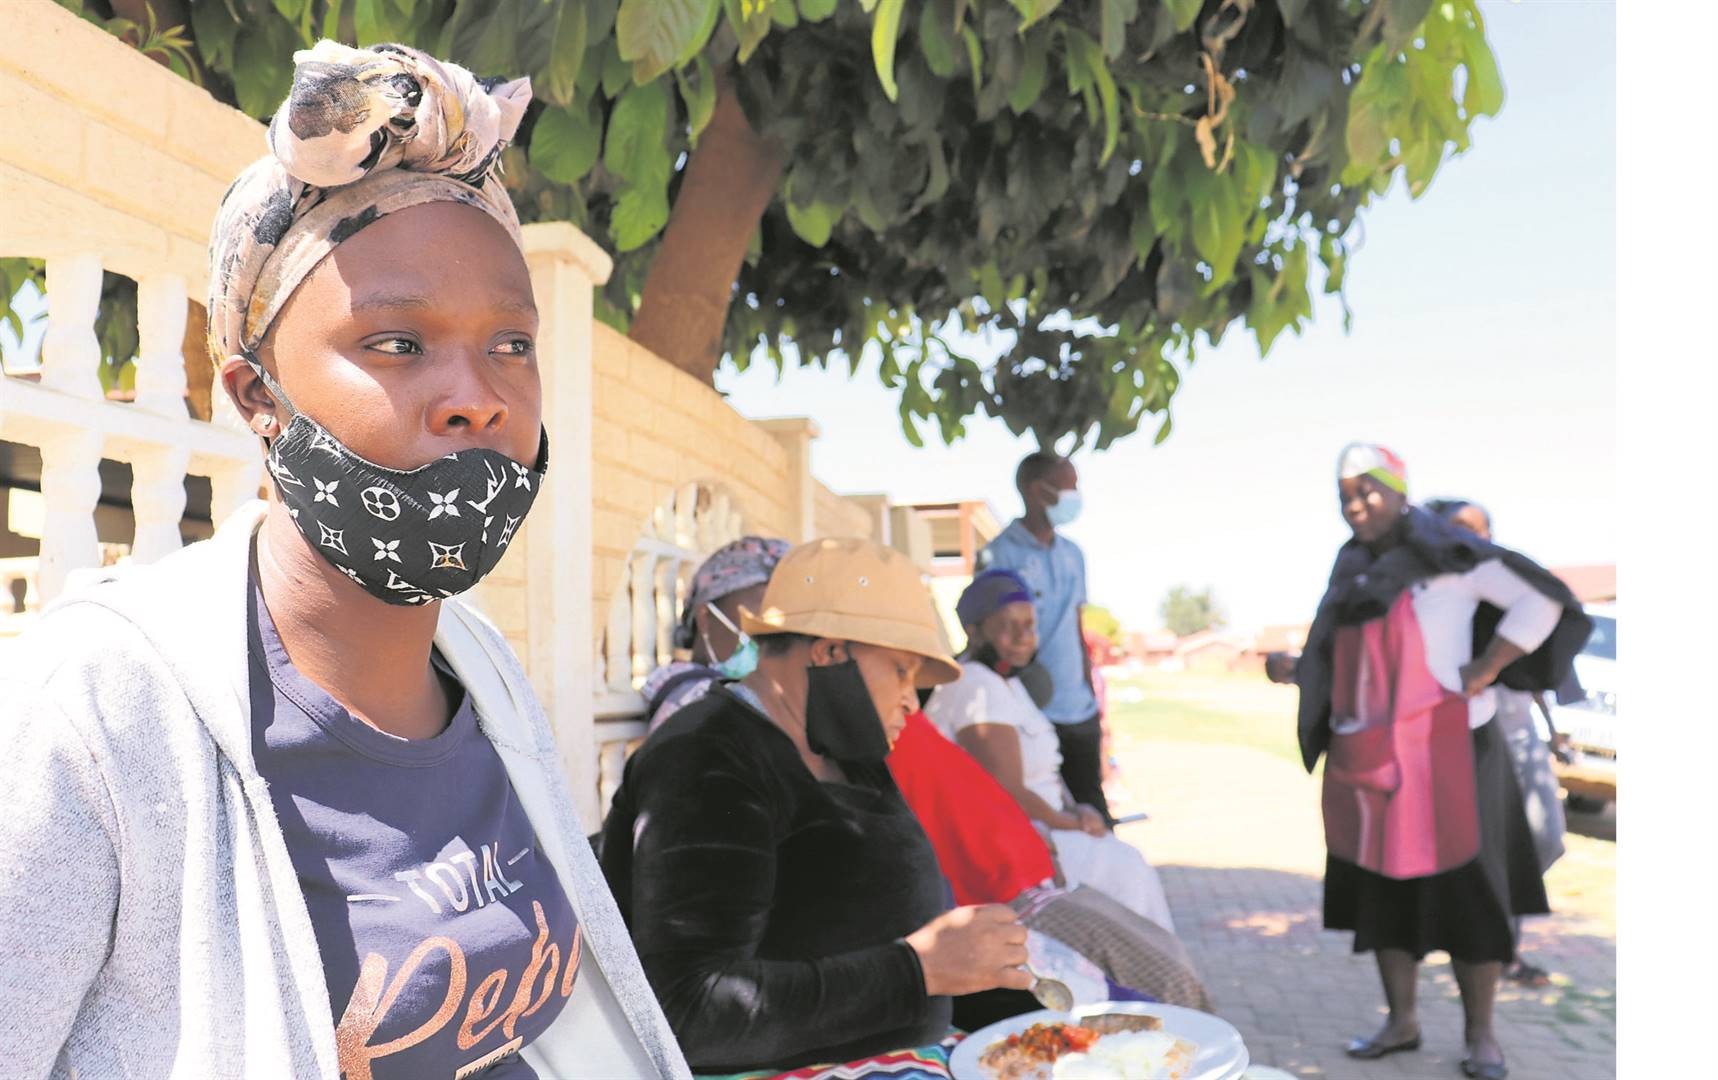 Sister Keke Mokoena at the scene with family members. Photo by Sifiso Jimta.